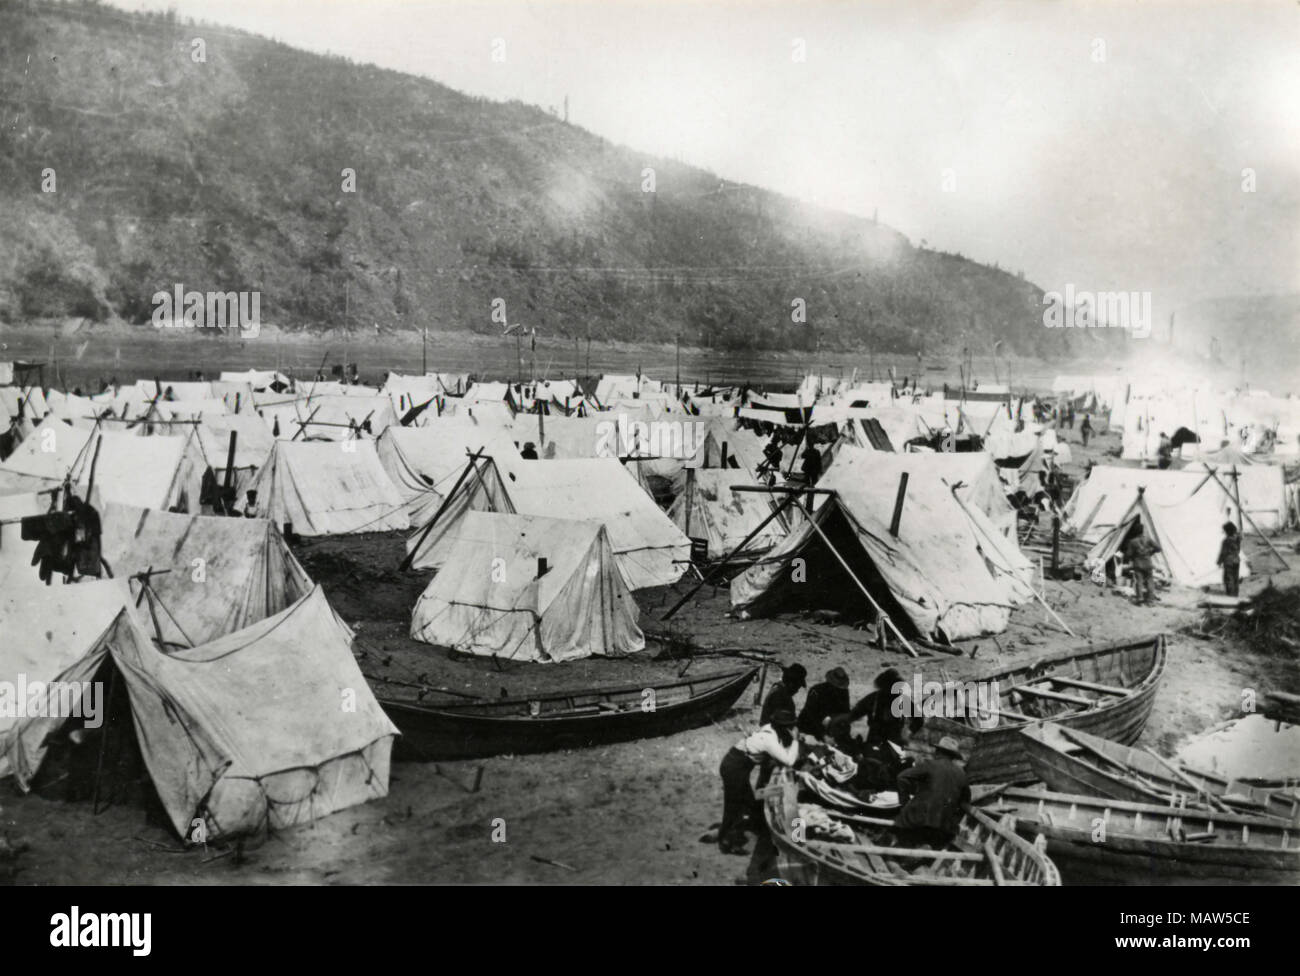 Chee-Chacos Camping Ground, Dawson City, Canada 1898 - Stock Image